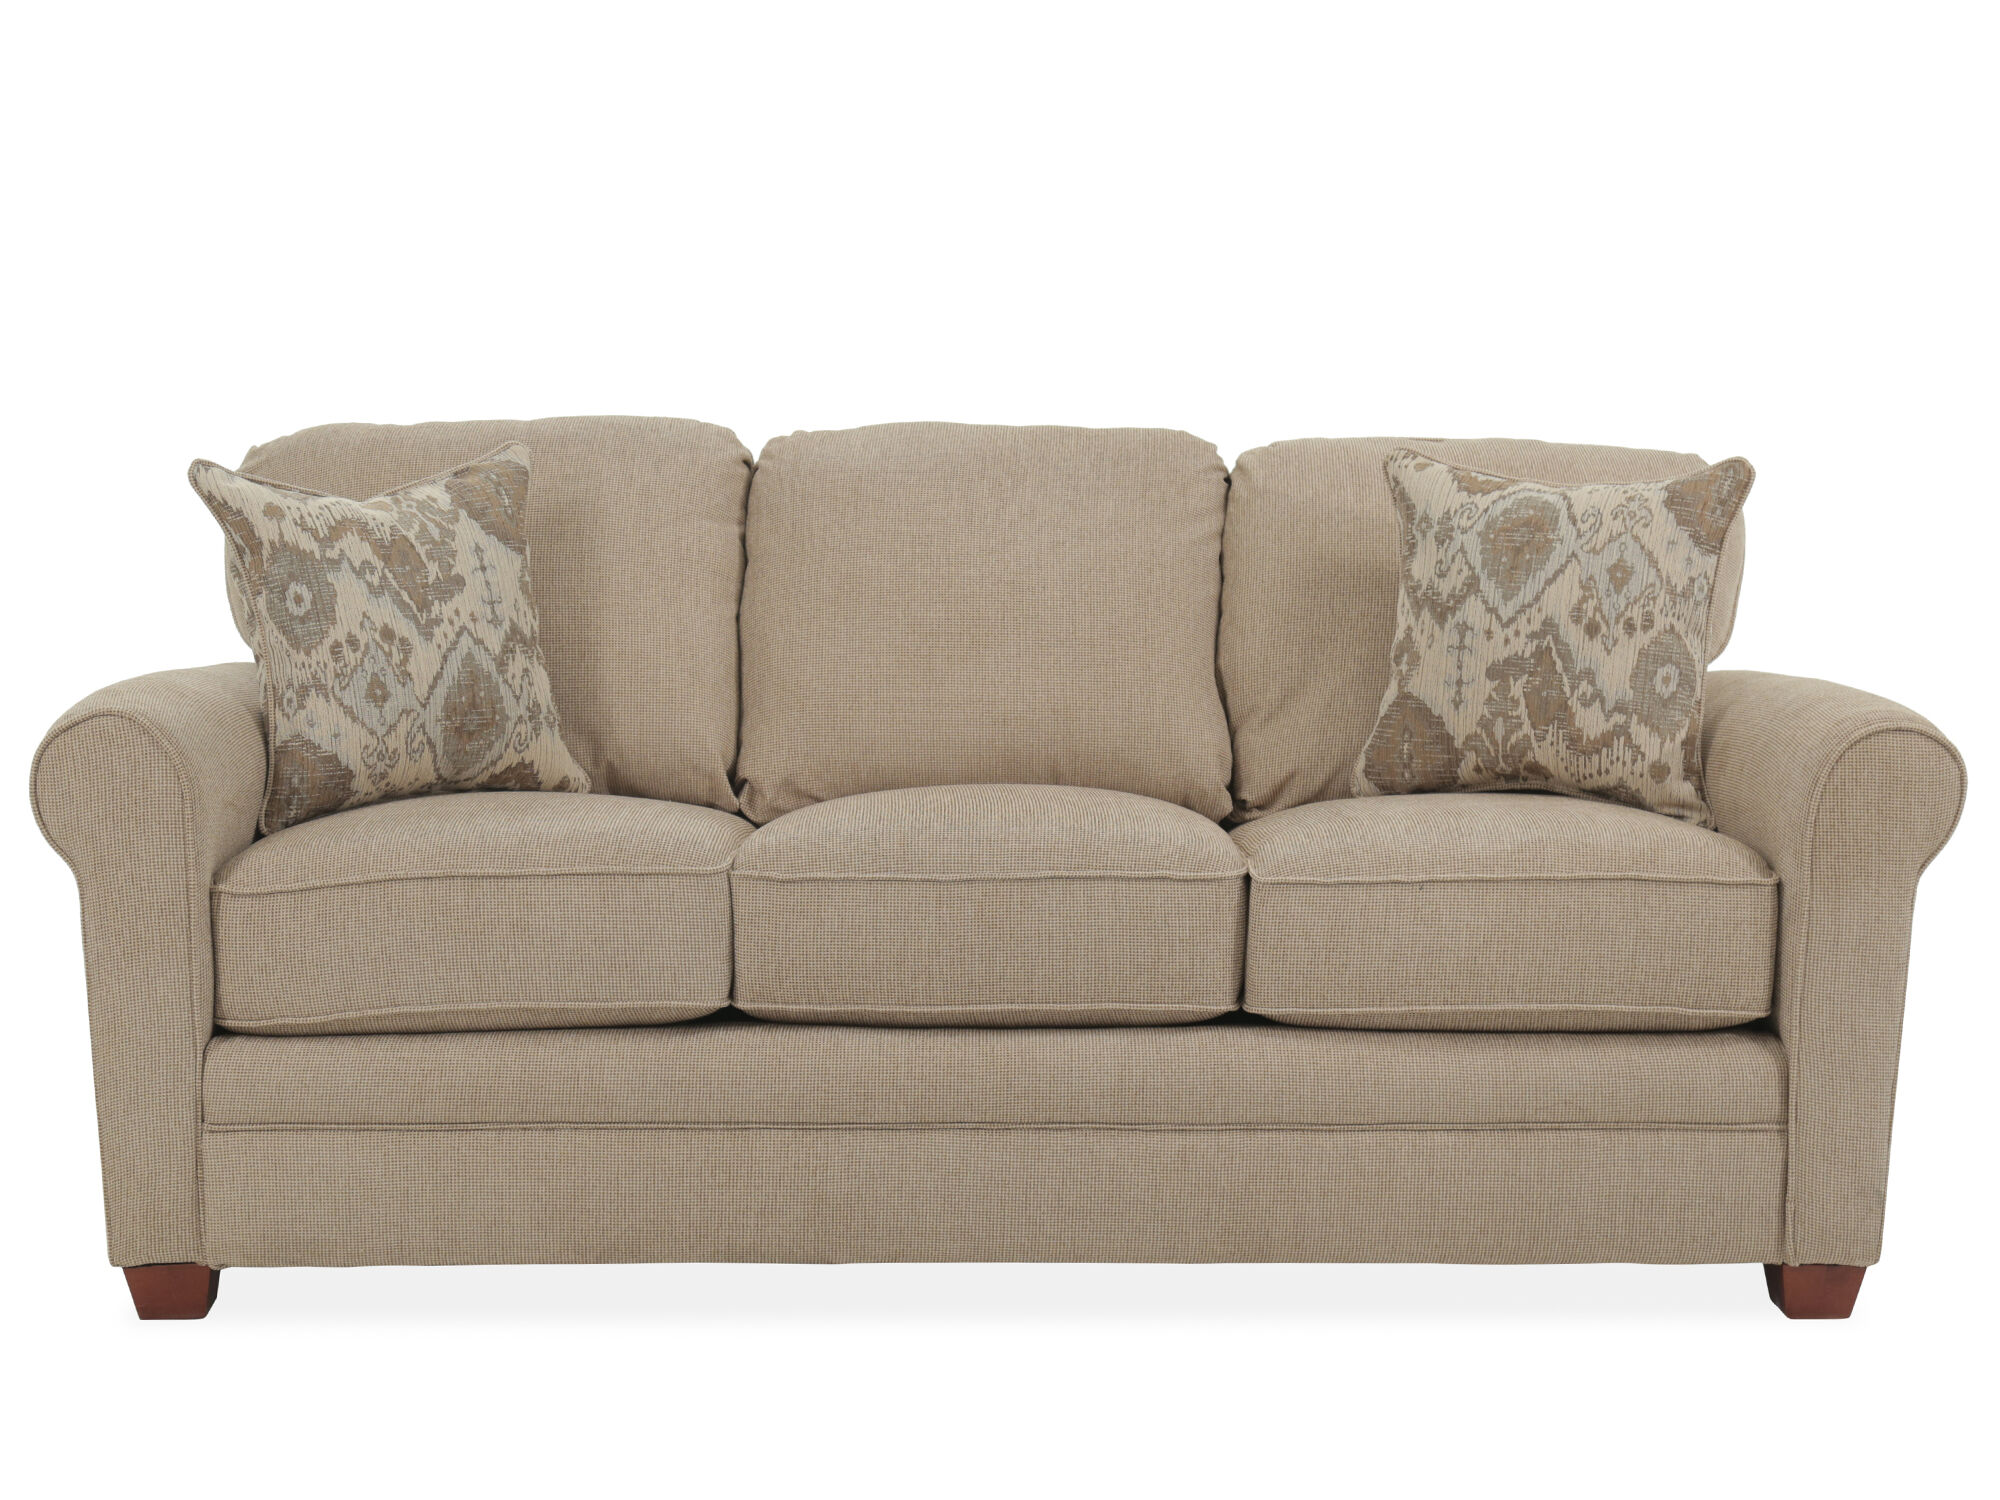 Roll Arm Transitional 84 Queen Sleeper Sofa In Sand Mathis Brothers Furniture